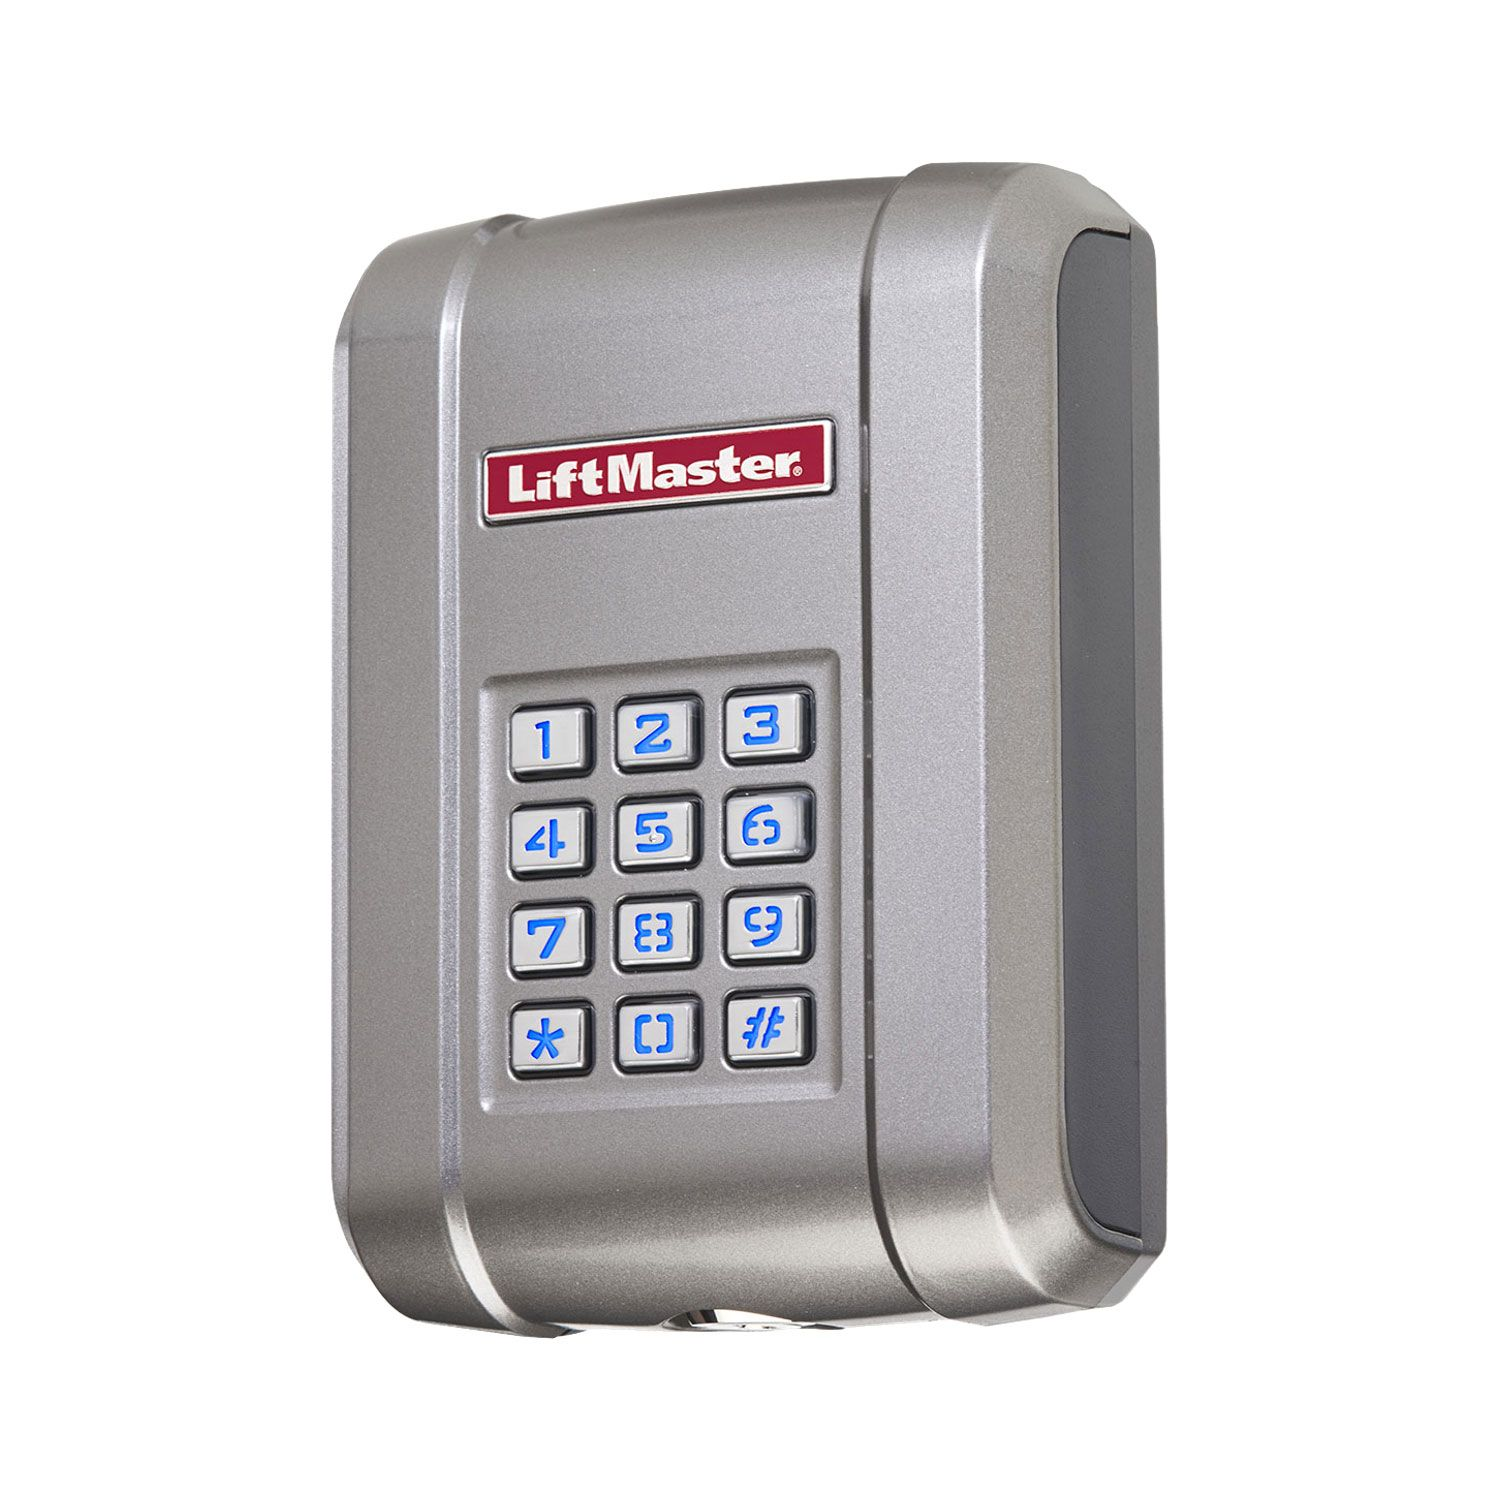 LiftMaster 250 Code Wireless Keypad